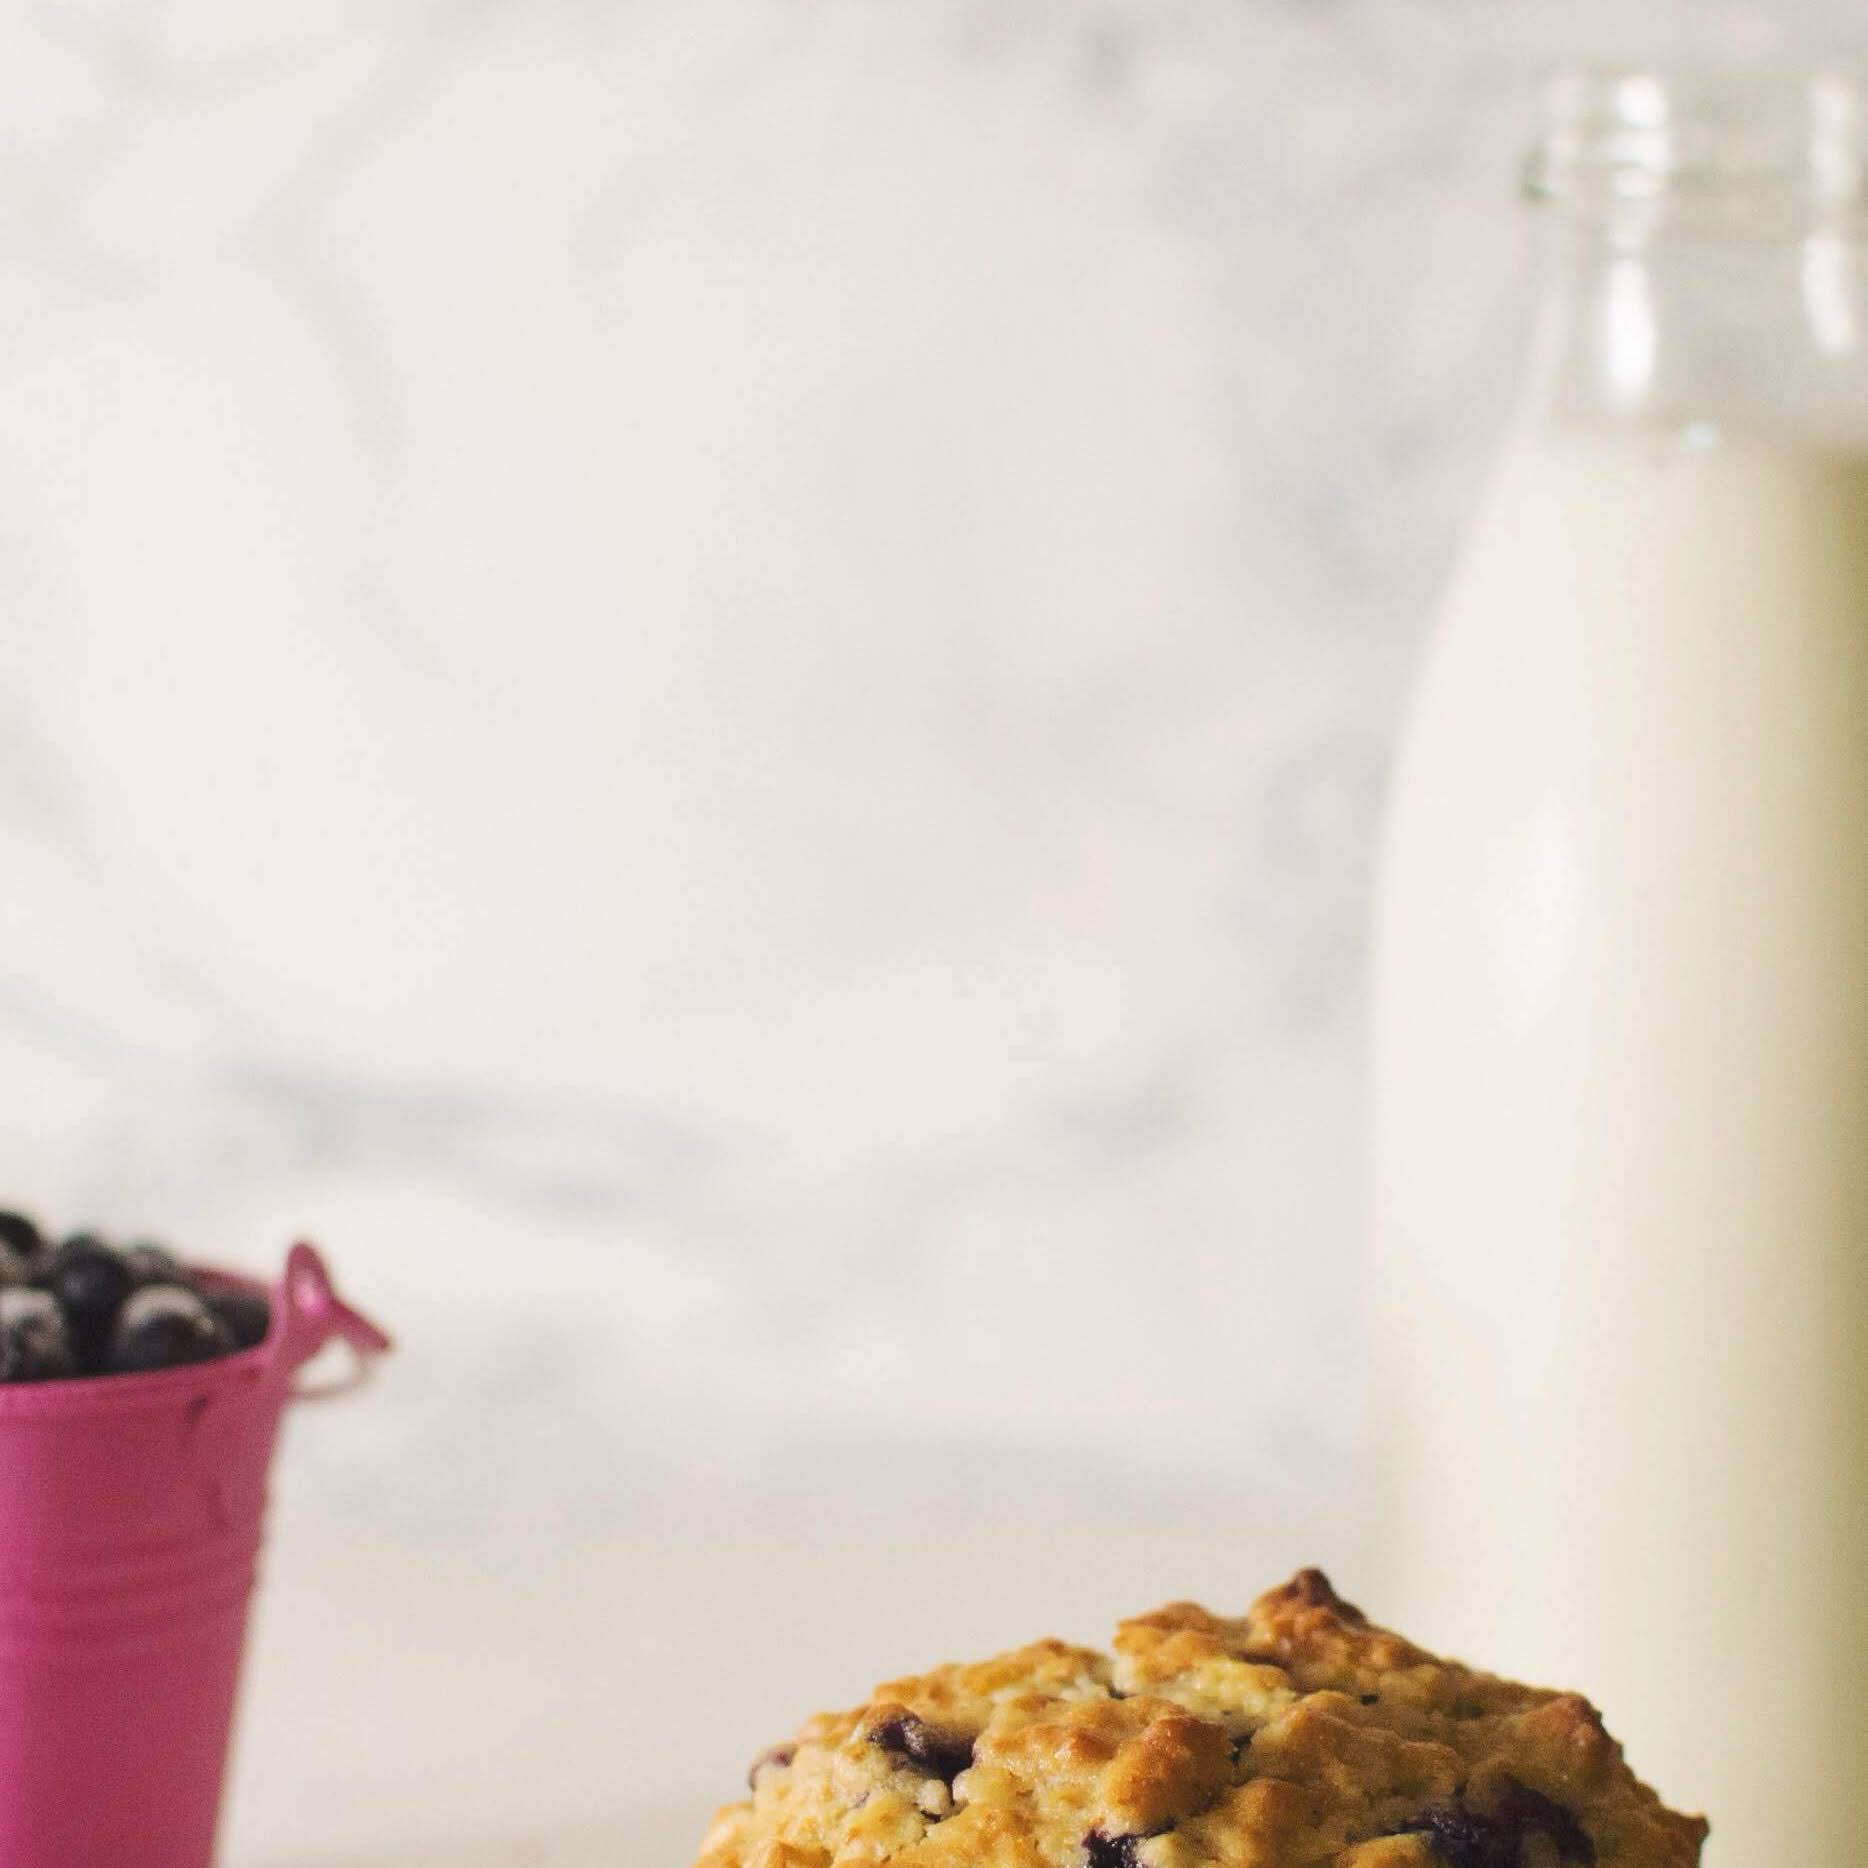 Best Oatmeal Blueberry Muffins You Have Tried